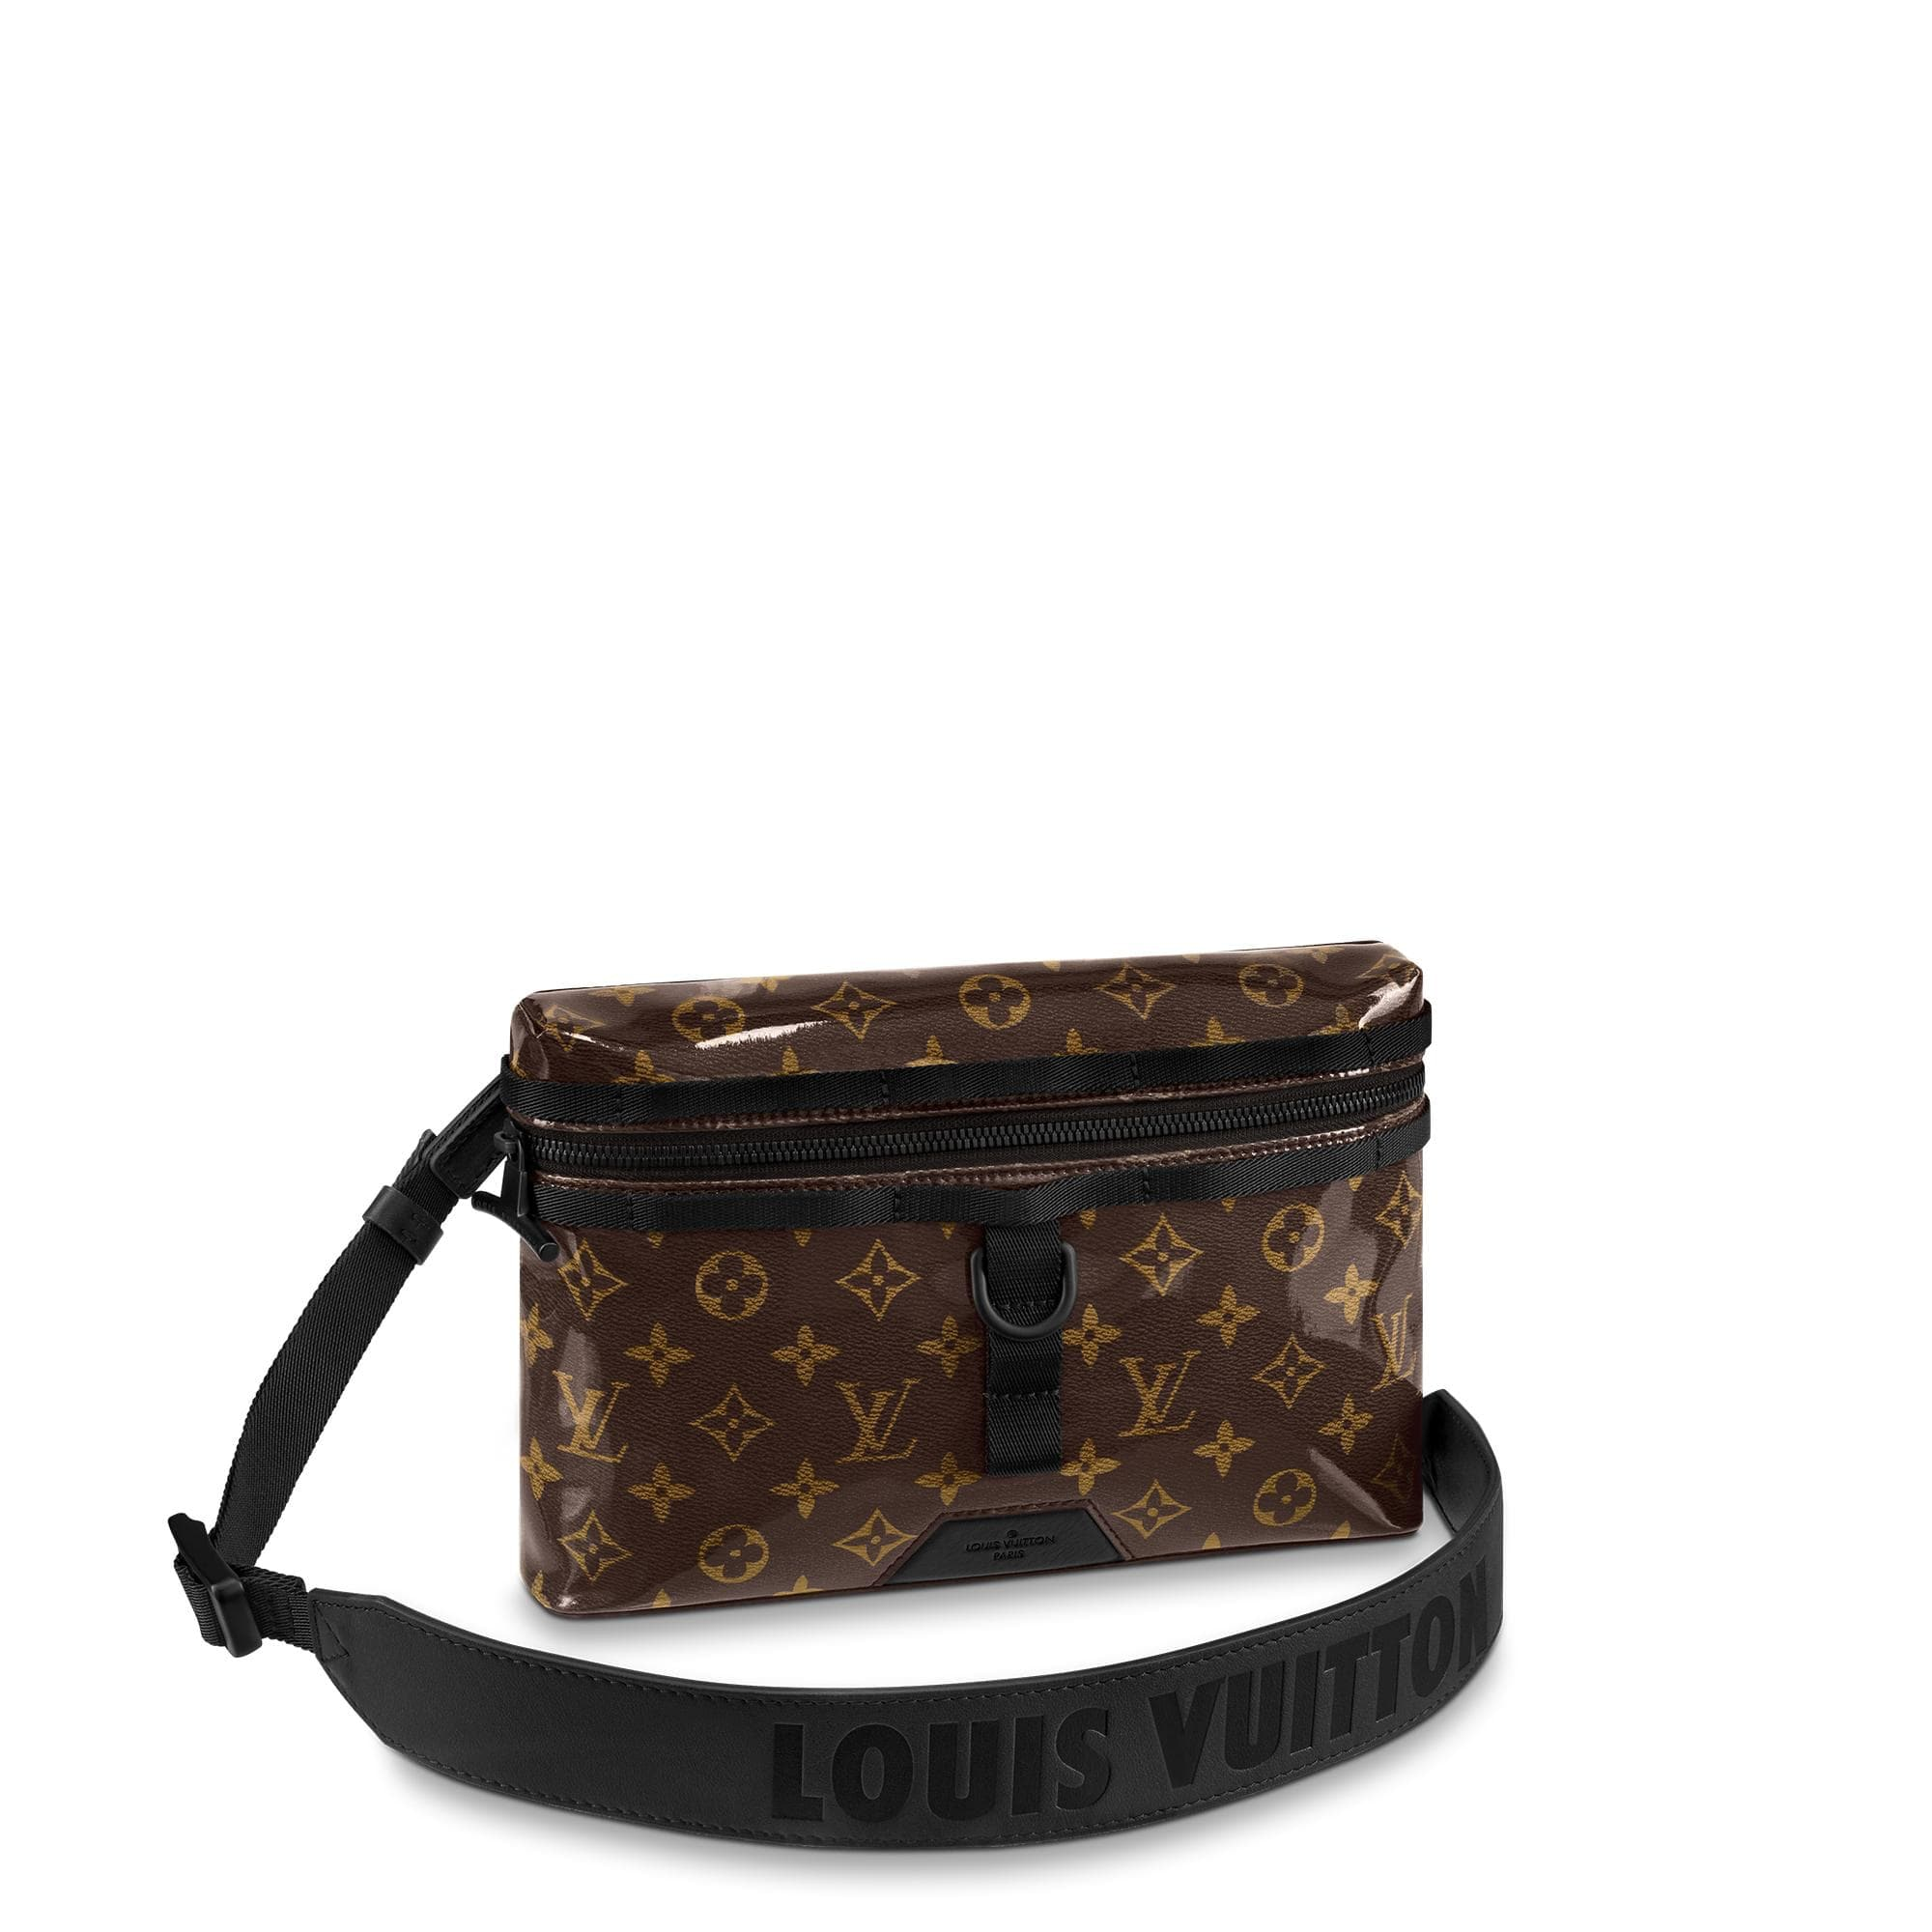 Louis Vuitton Messenger Monogram PM Brown